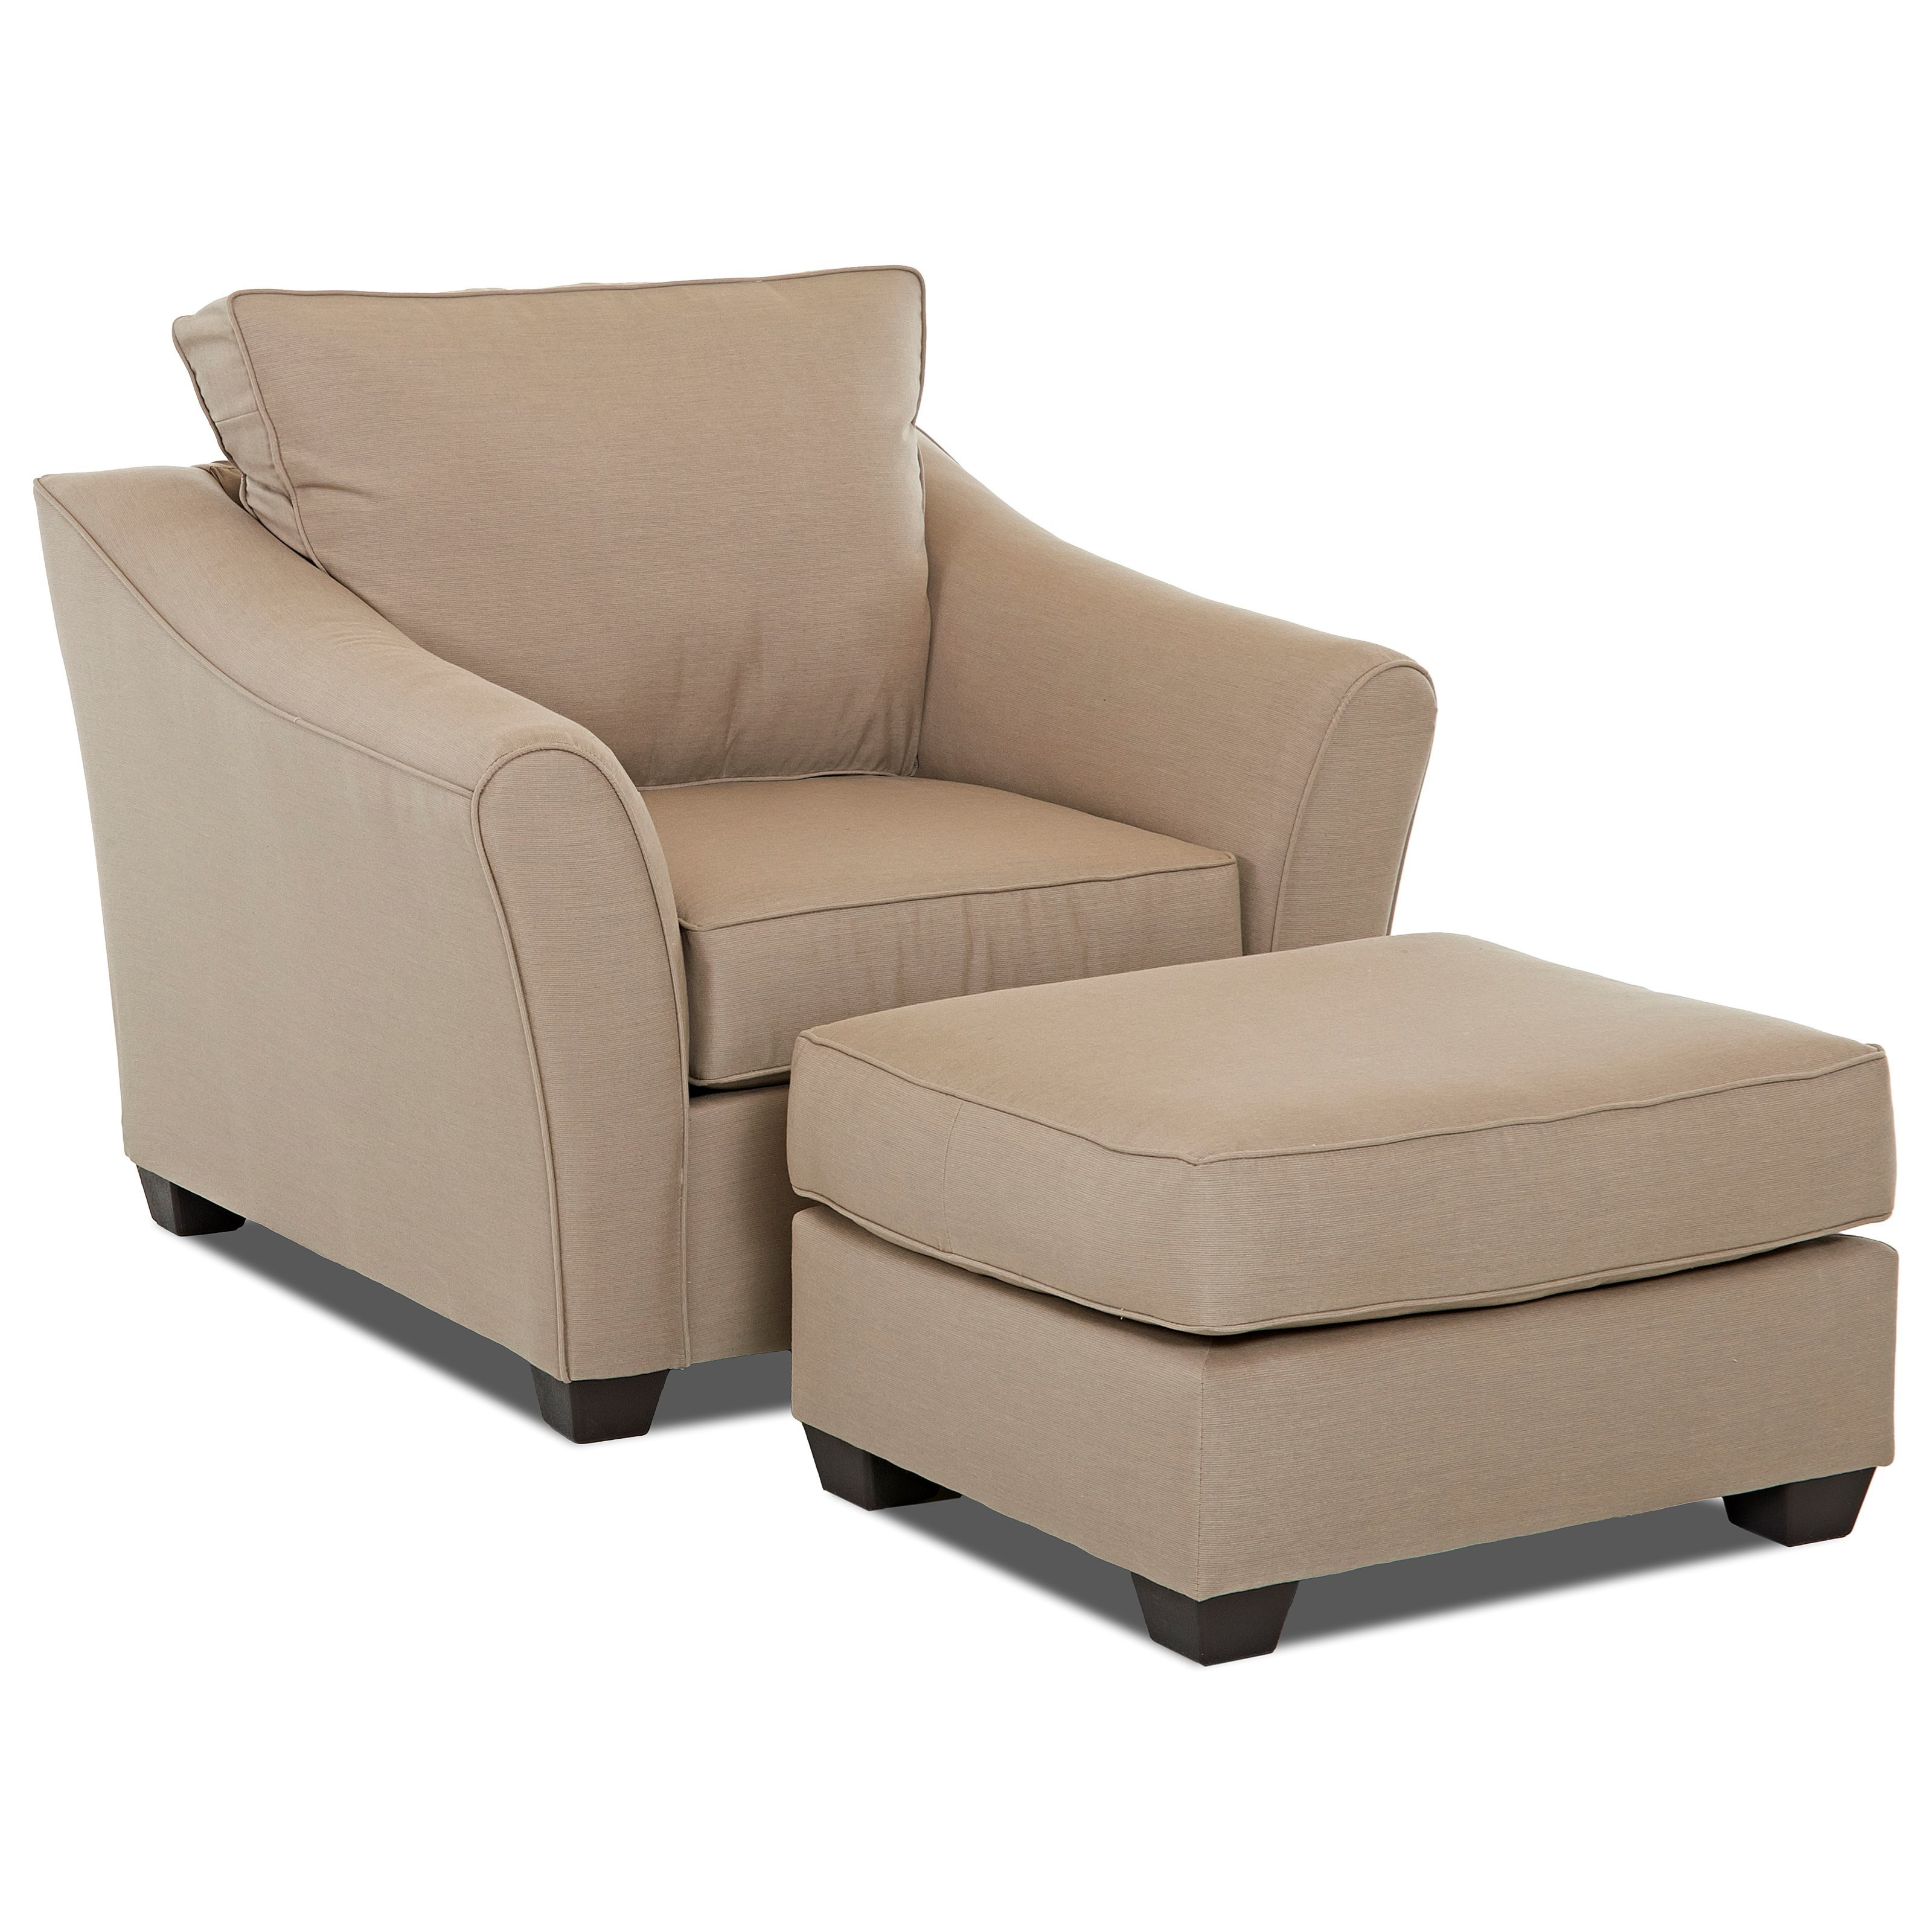 Value City Chairs Klaussner Linville Contemporary Chair And Ottoman Set